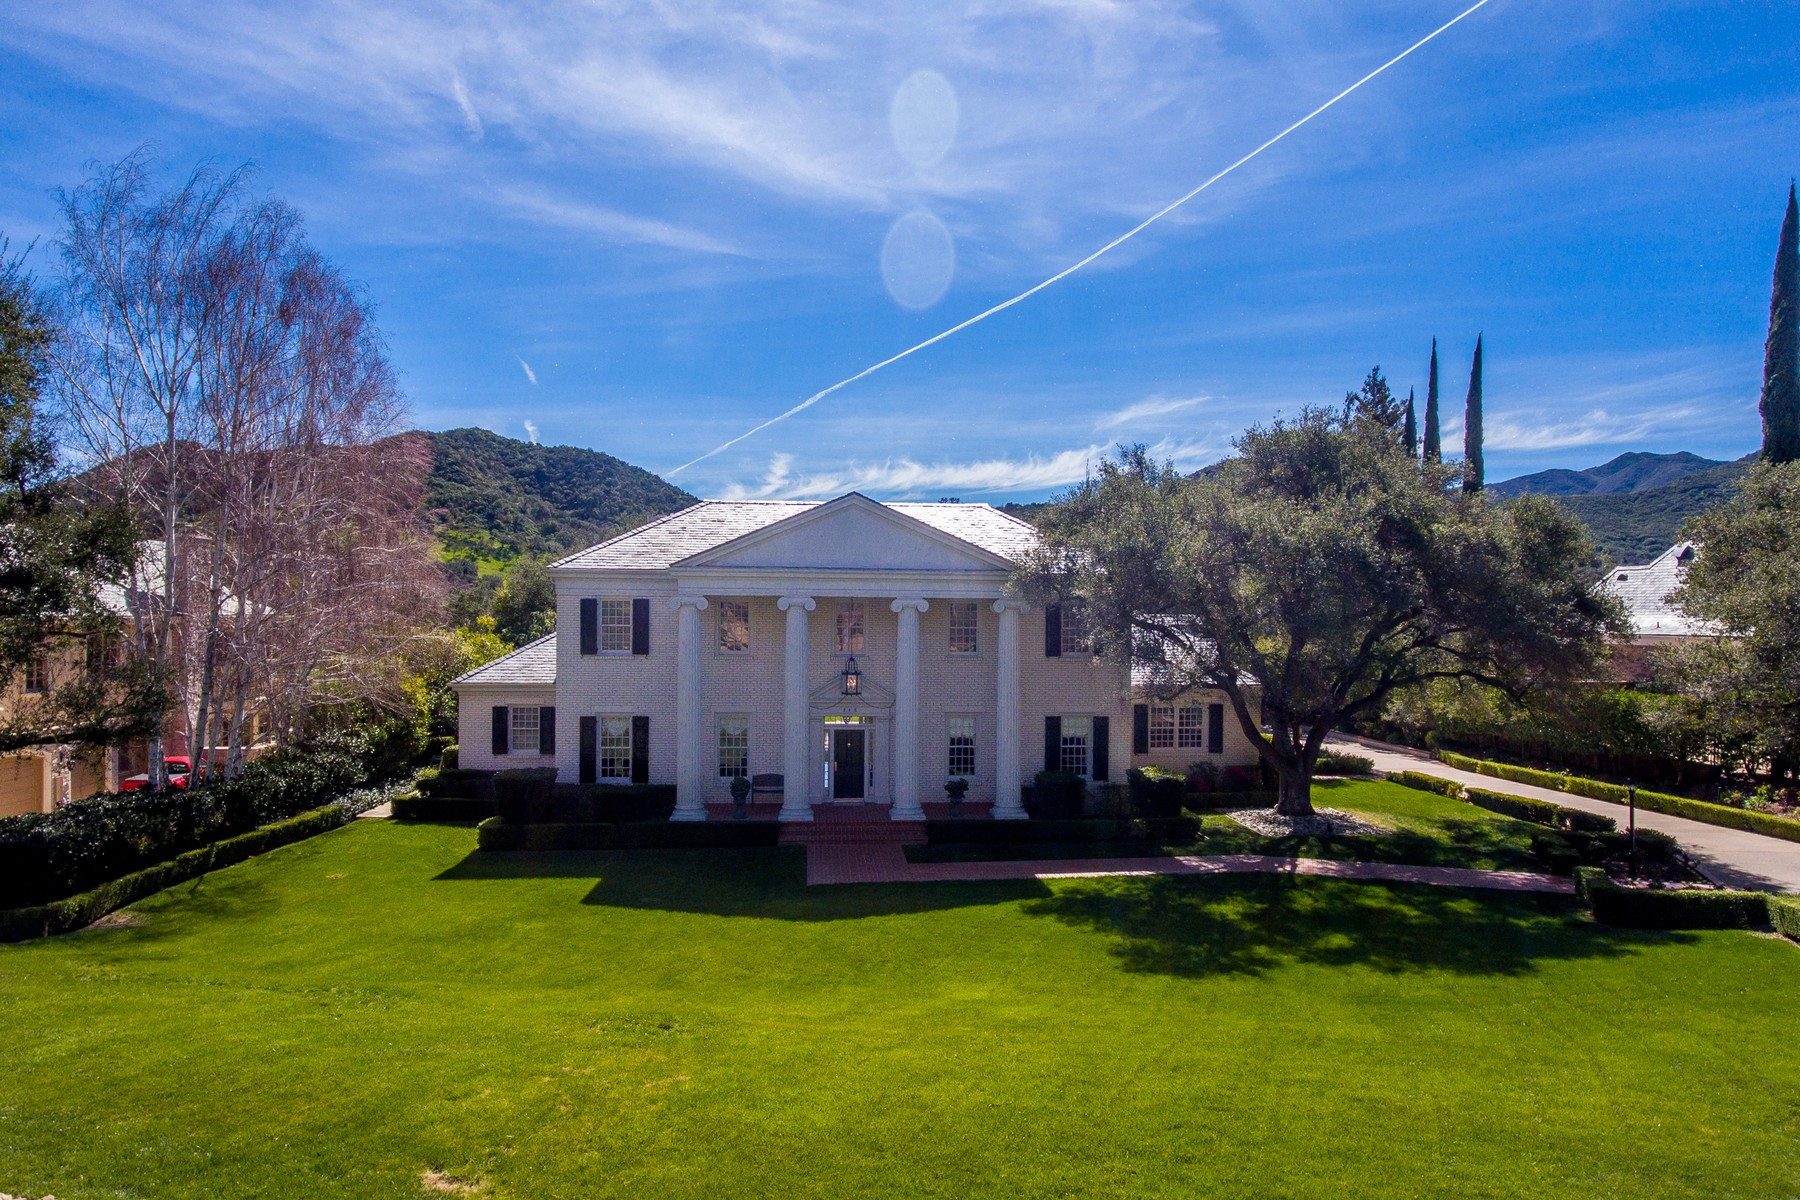 Villa per Vendita alle ore 248 W Stafford Road Thousand Oaks, California, 91361 Stati Uniti